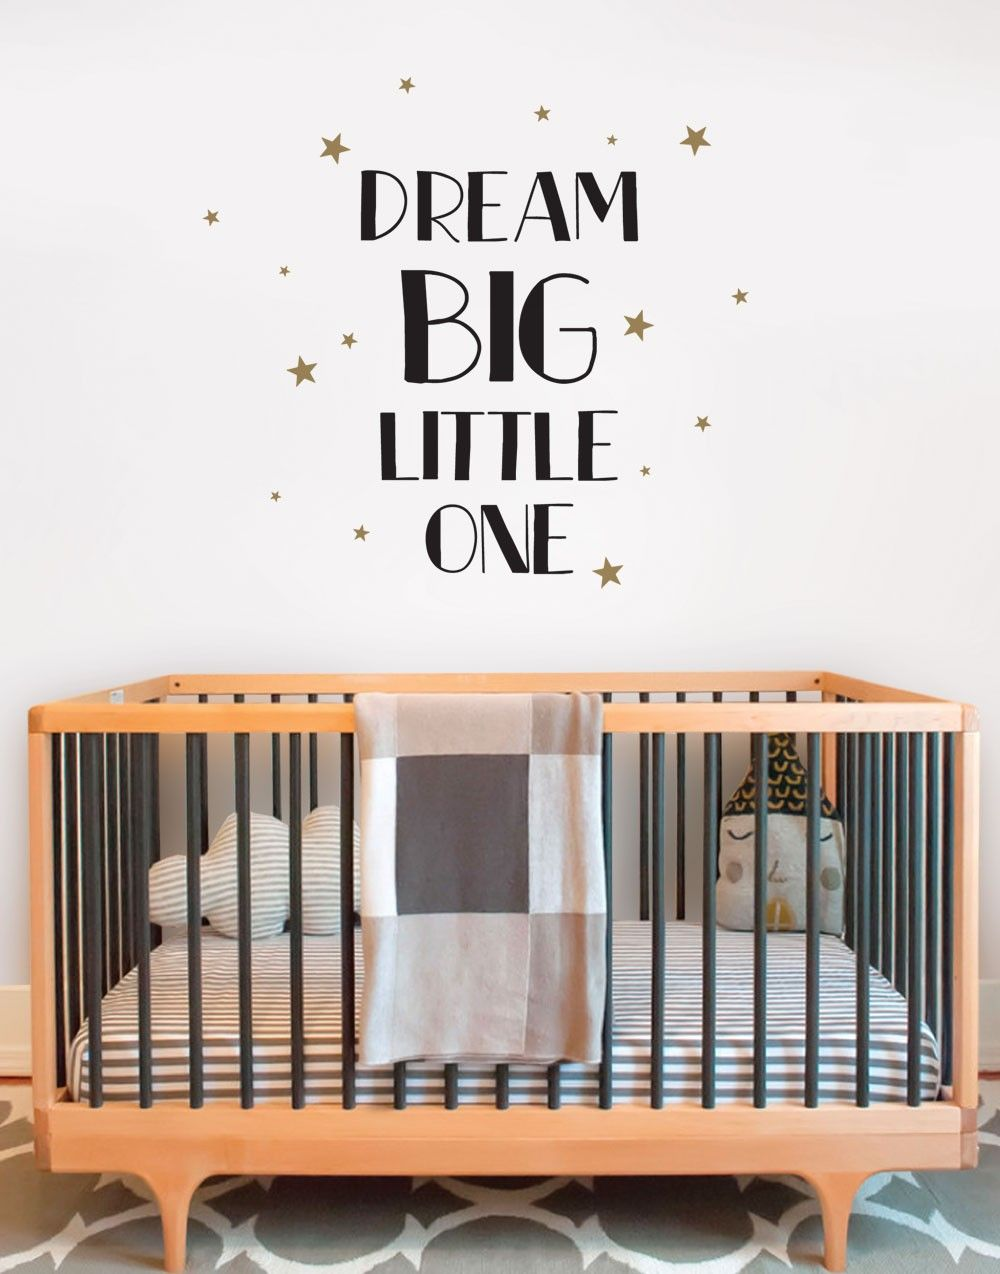 Dream big little one quote lettering wall decal babykids clothes